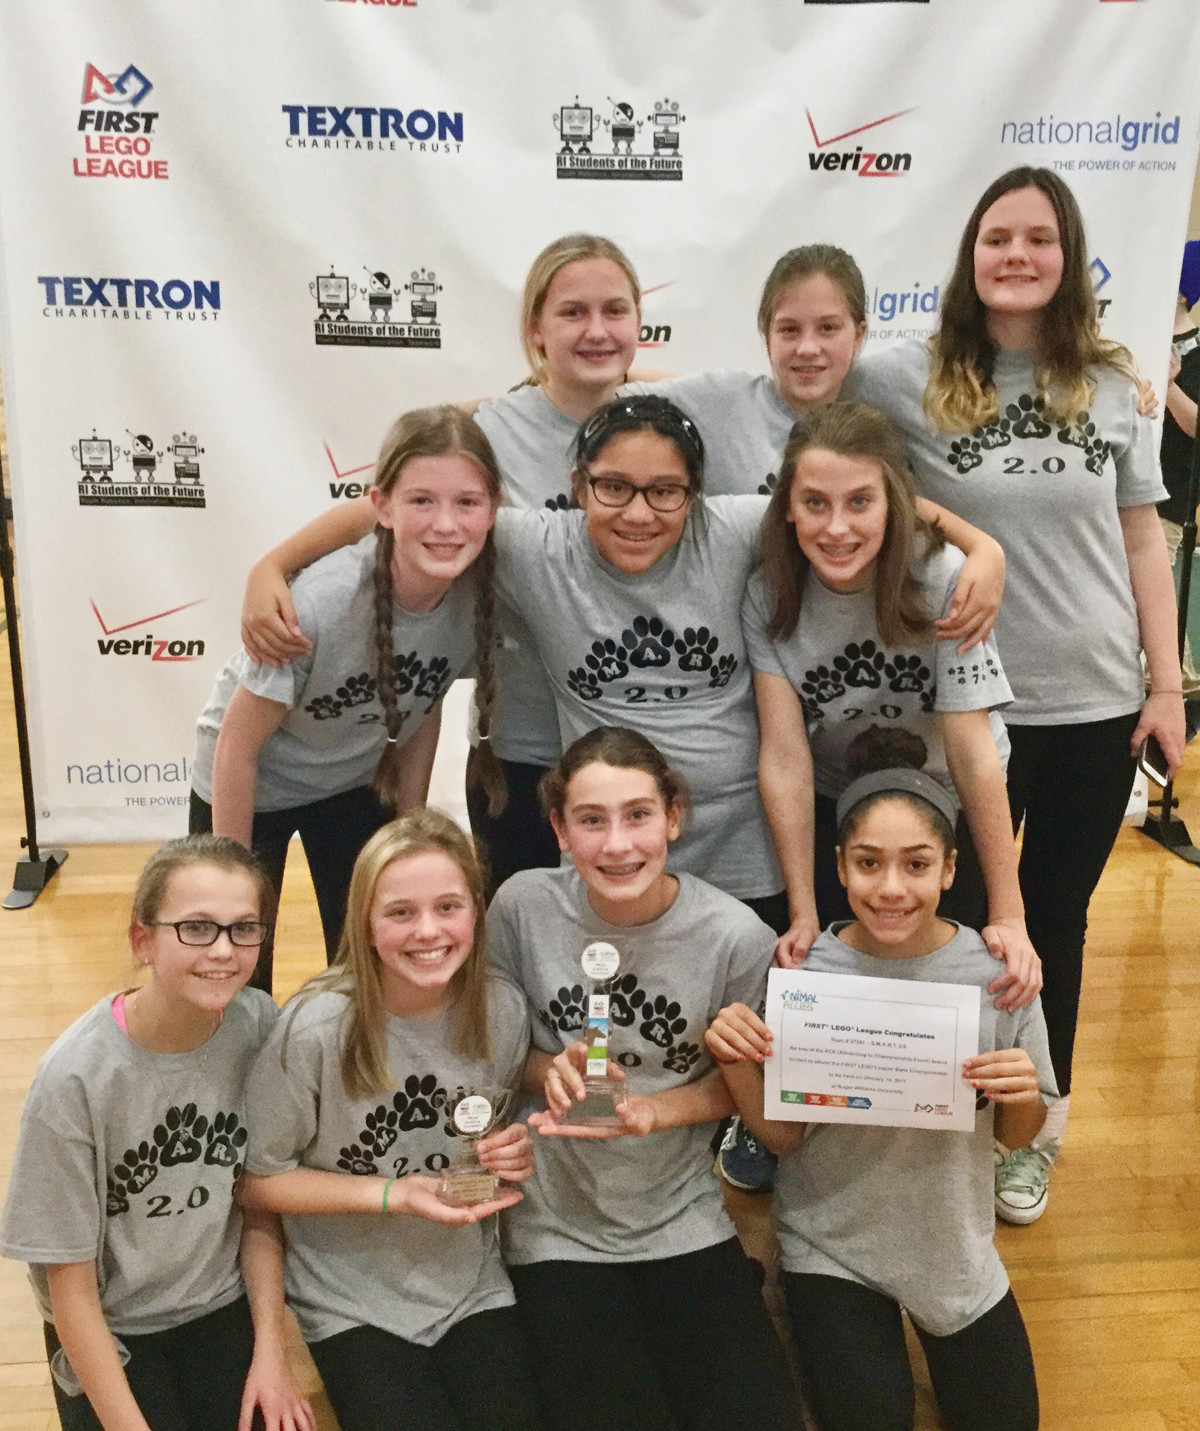 AWARD-WINNING TEAM: S.M.A.R.T. 2.0 includes: (front row, left to right) Daria Smuk (Smithfield), Margaret Mahoney (East Providence), Gabriella Osario-Palo (Cranston), Eva Matos (Providence); (middle row) Ainsley Pattie (Warren), Ava Troino (East Providence), Maeve Martineau (West Warwick); (back row) Wren Hager (Bristol), Lucy Bosch (Providence) and Isabella Heffernan (Warwick).